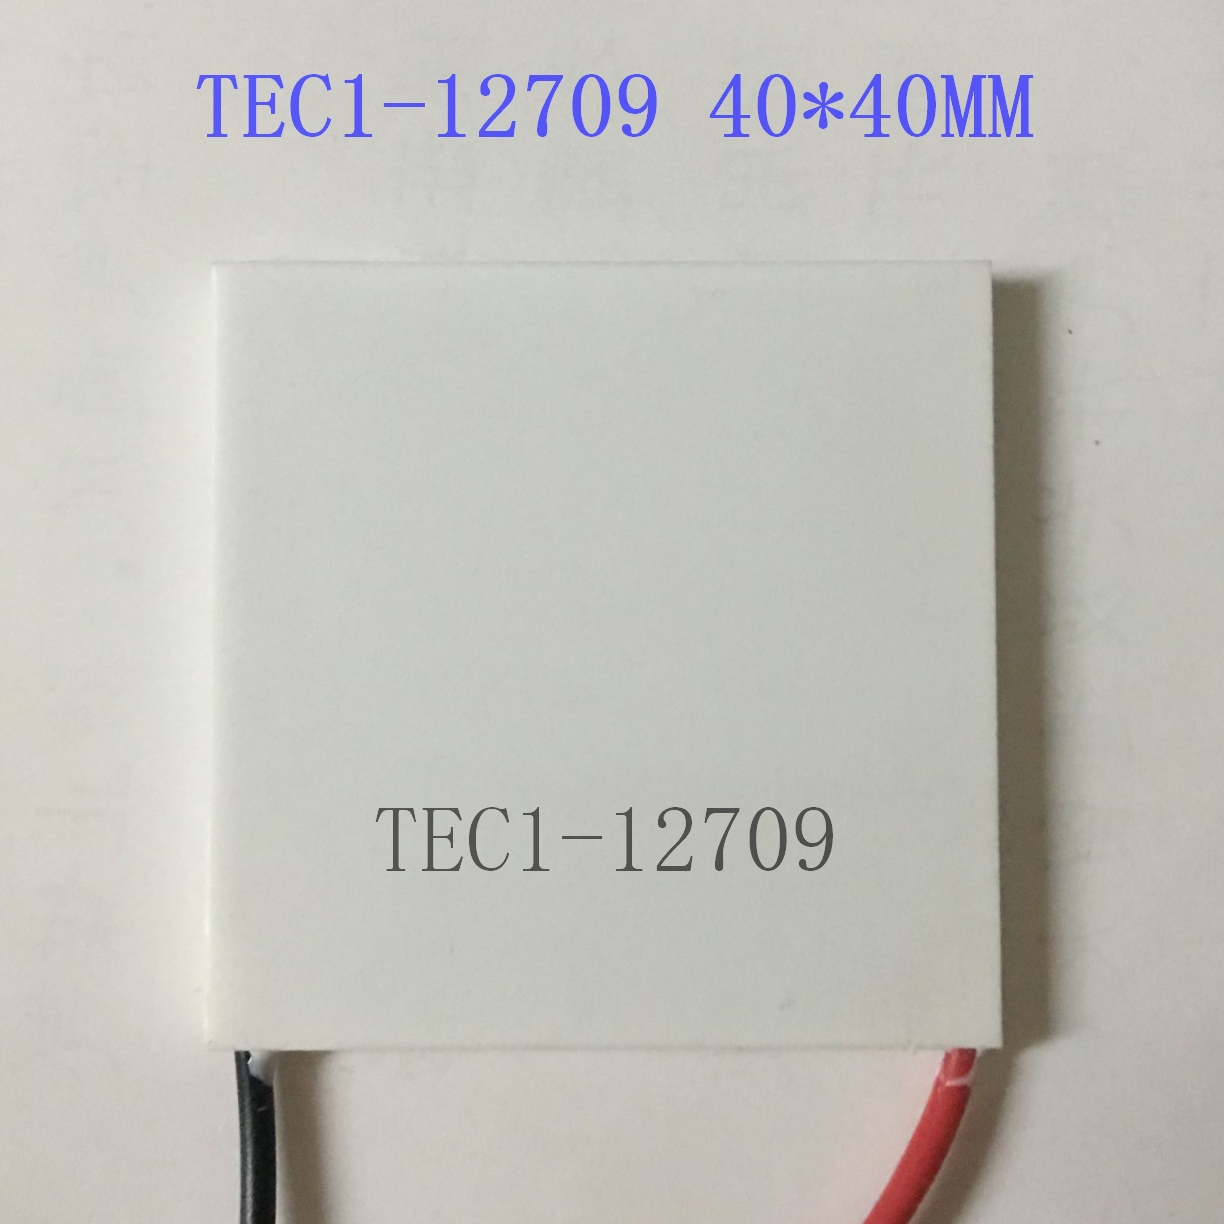 TEC1-12709 40*40MM semiconductor refrigeration chip 12V9A high power refrigerator parts tec1 12709 75w semiconductor refrigeration part